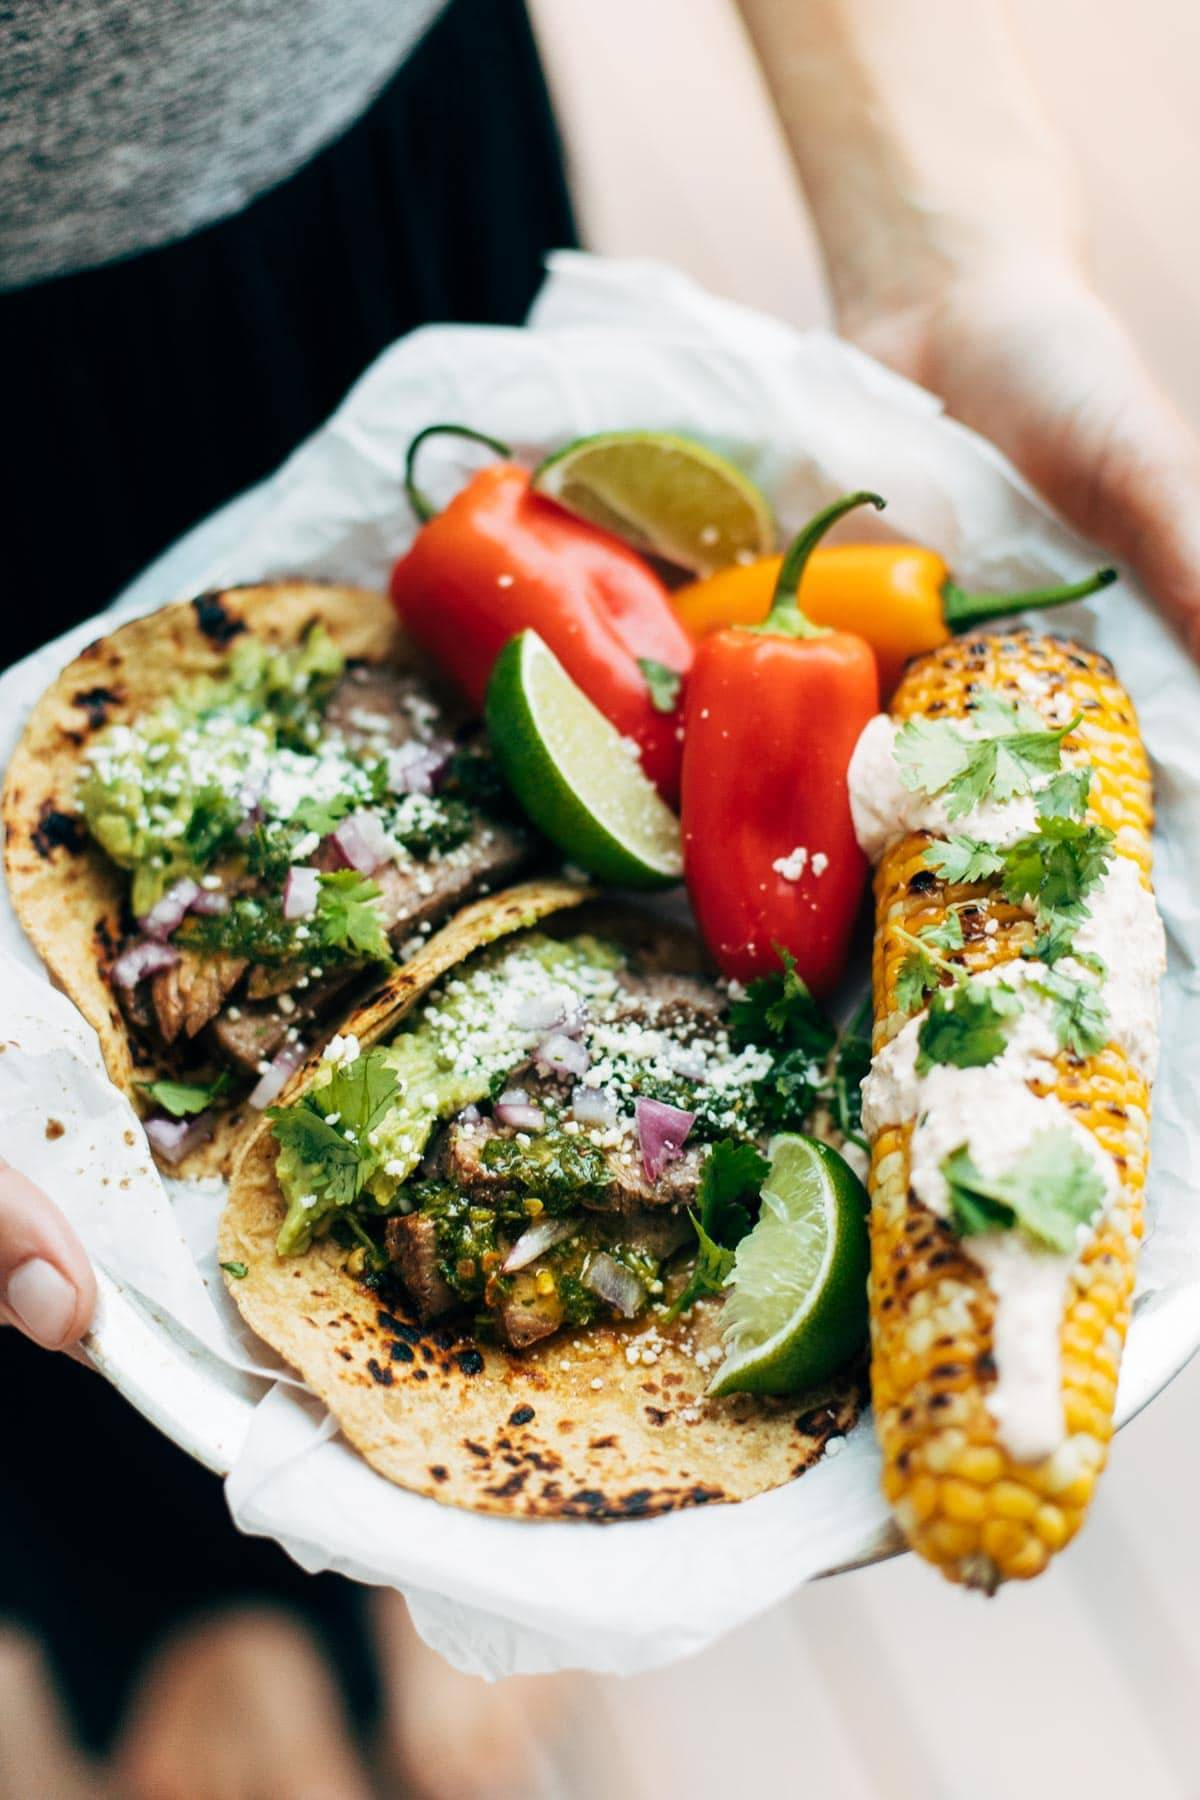 Chimichurri Steak Tacos with corn and peppers.